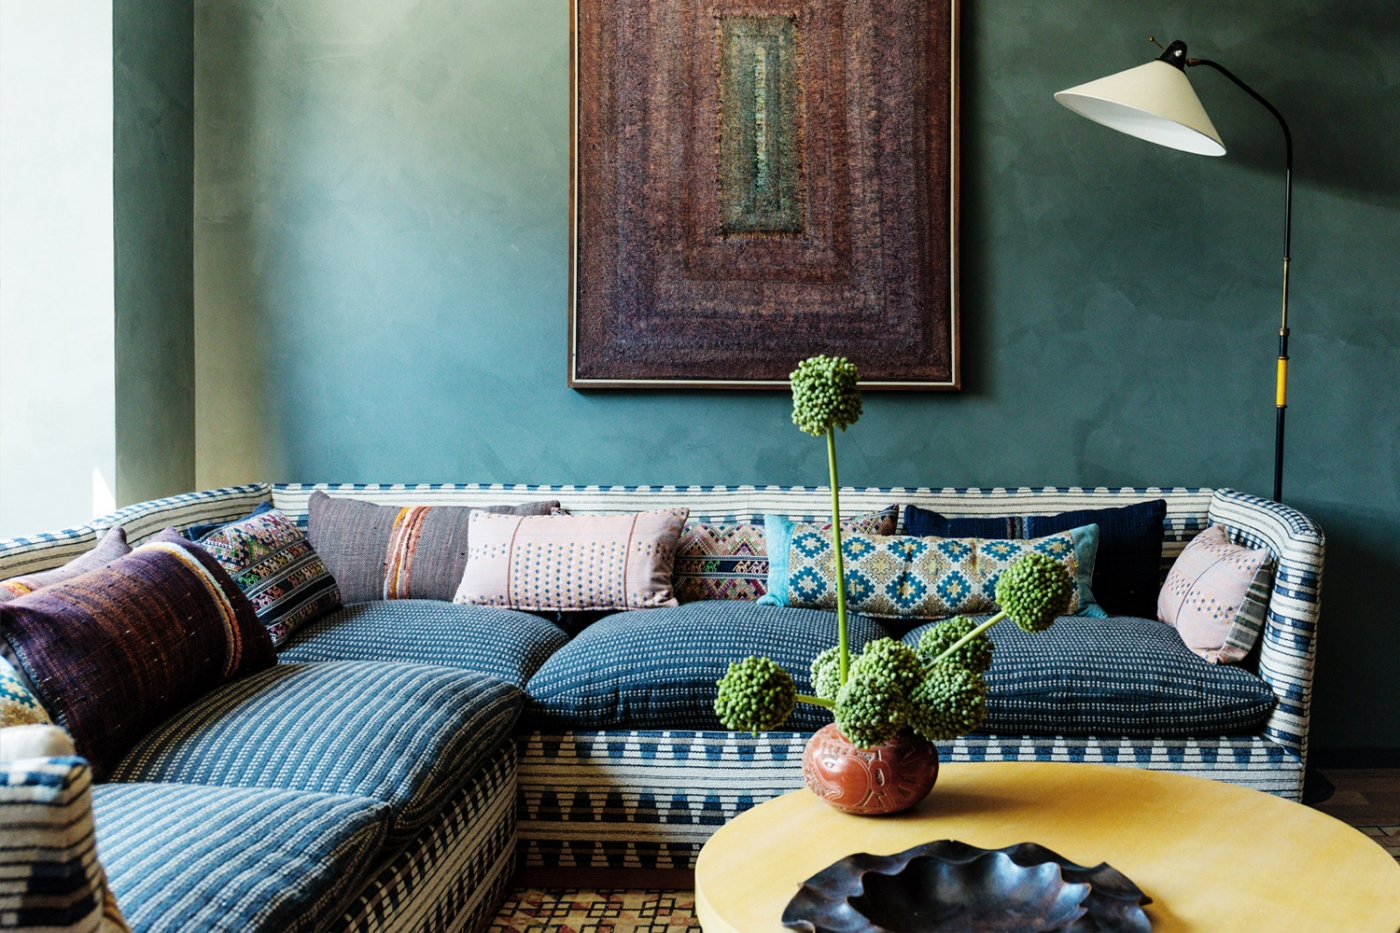 Where To Stay - 5 New Luxury Hotels In Los Angeles design hotel 5 New Design Hotels In Los Angeles featured 1 1400x933